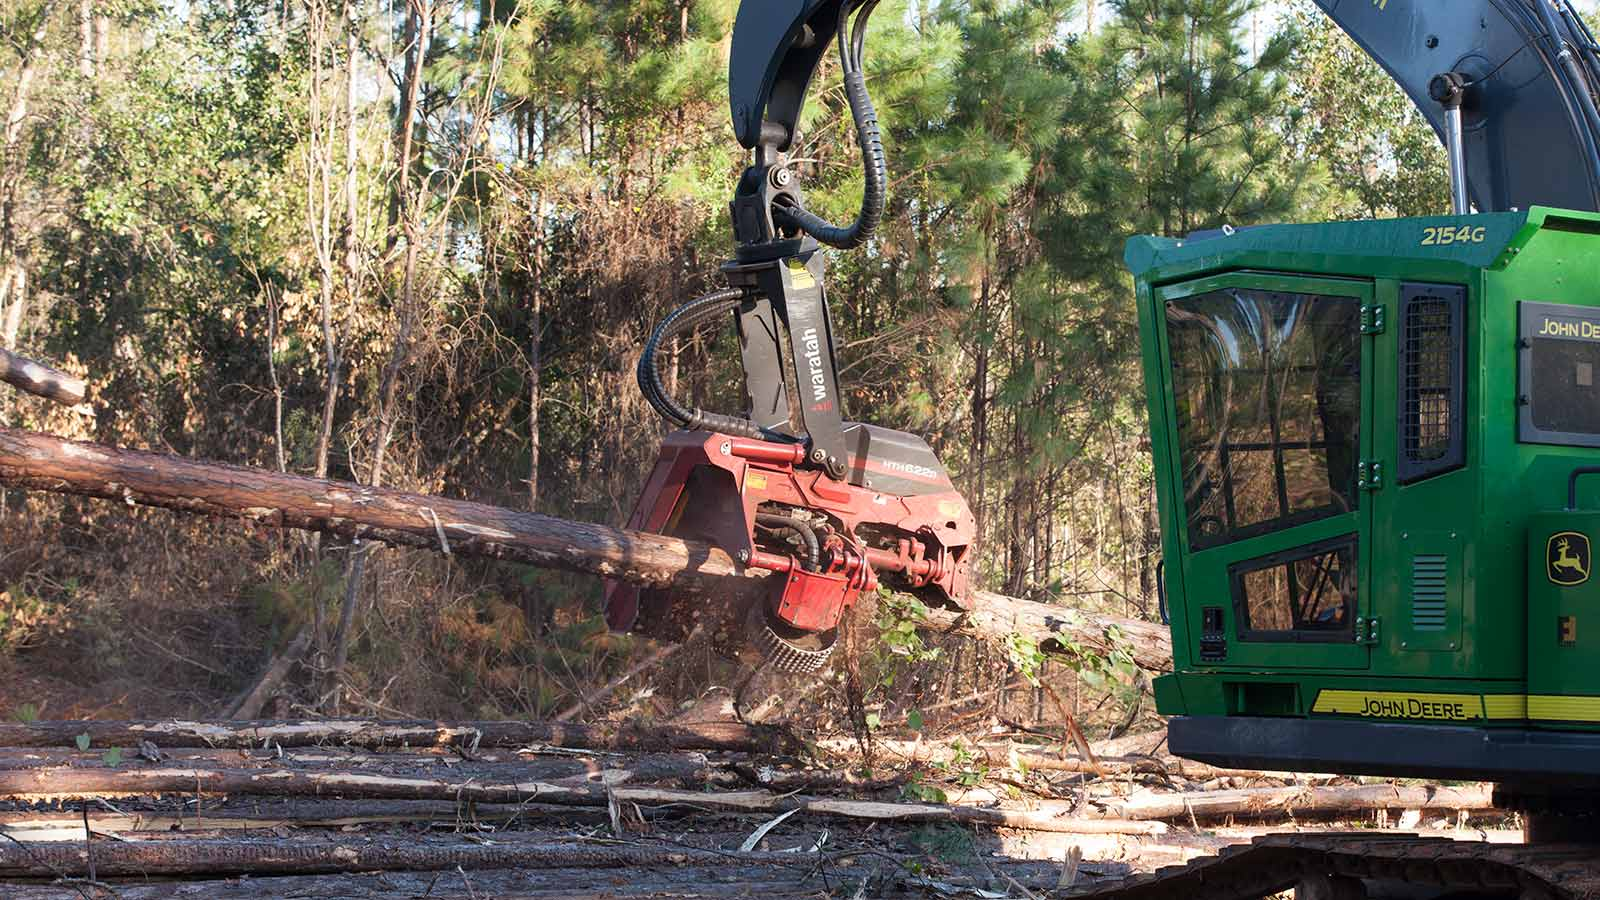 John Deere 2154G Swing Machine equipped with a Waratah HTH622B head cutting limbs from logs.